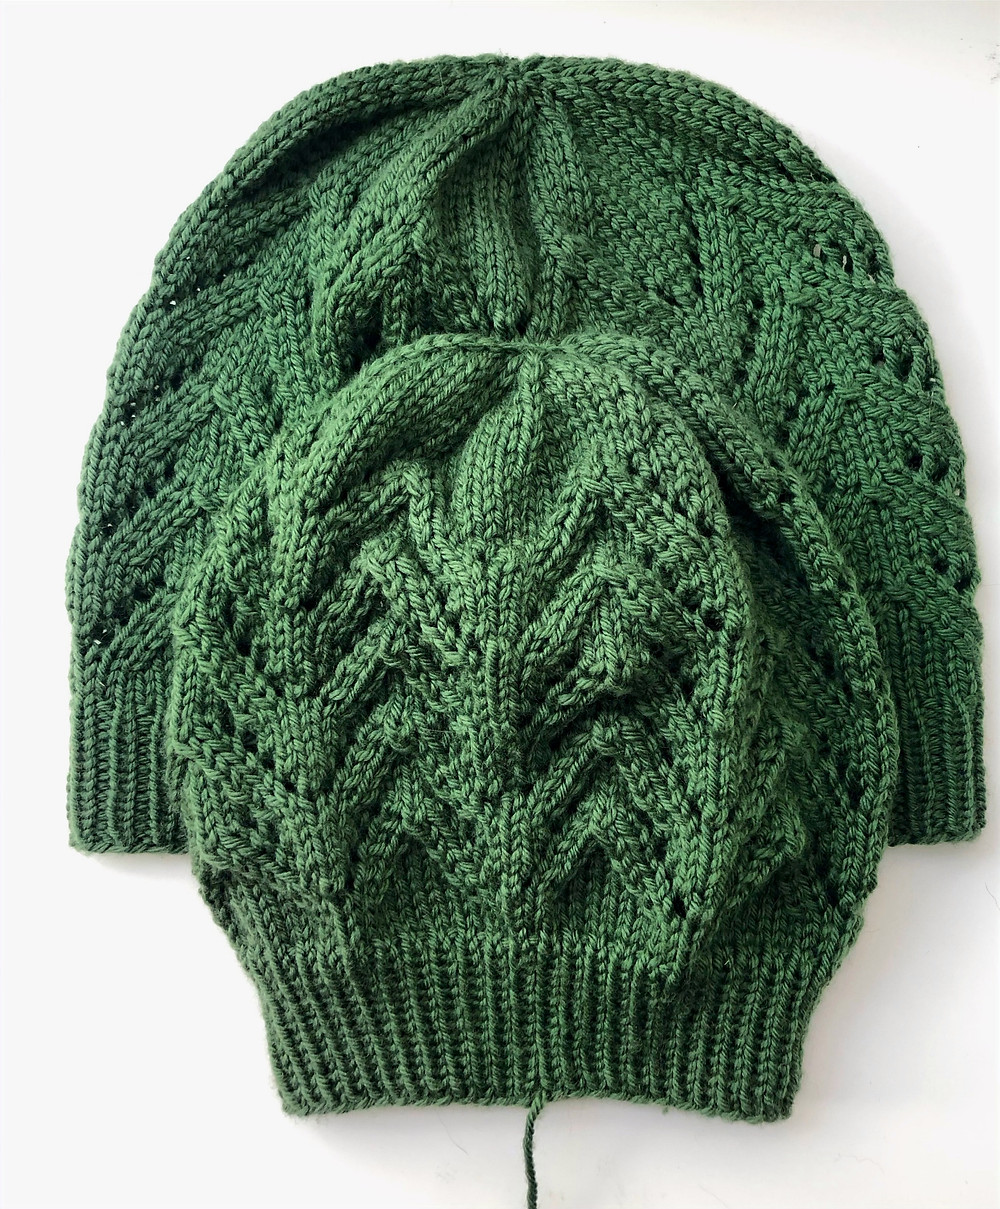 Two green knit hats with lace detail against a white background. One hat is lay on top of the other to show the difference in size and shape as a result of blocking. The one at the back is bigger and wider, the one at the front is smaller and more condensed.